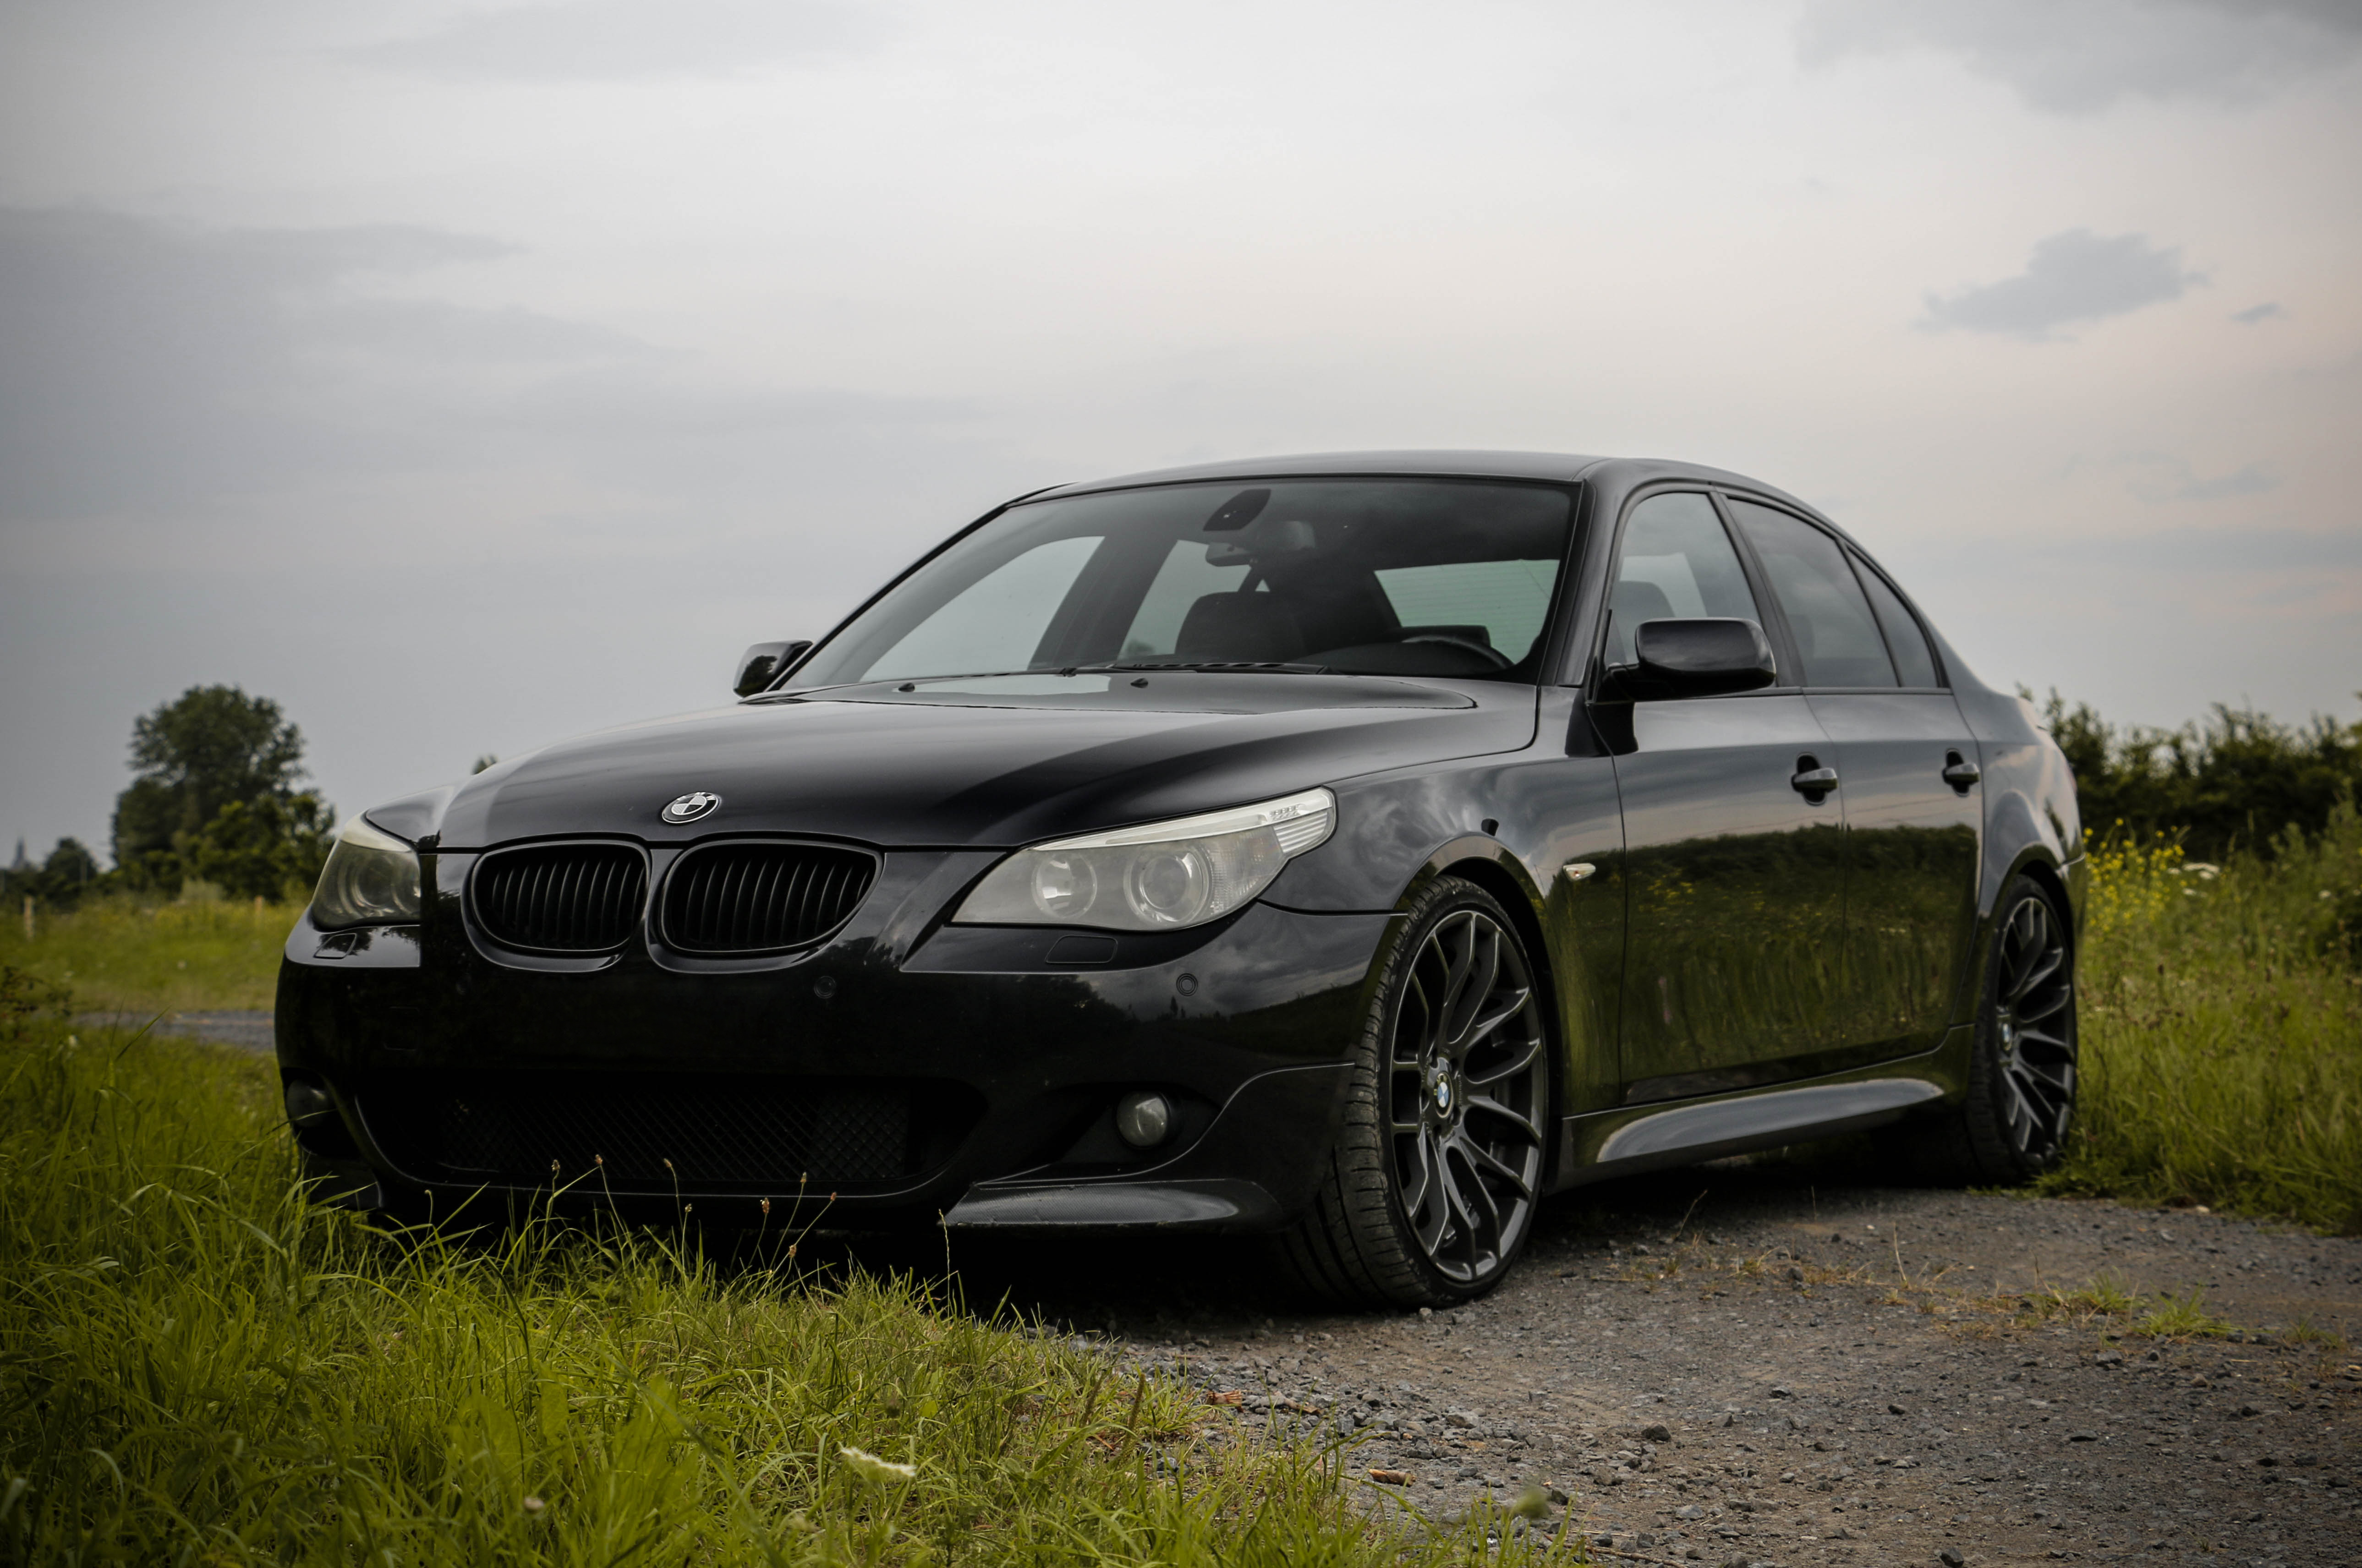 2005 Bmw E60 With M Look And 20inch Breyton Wheels